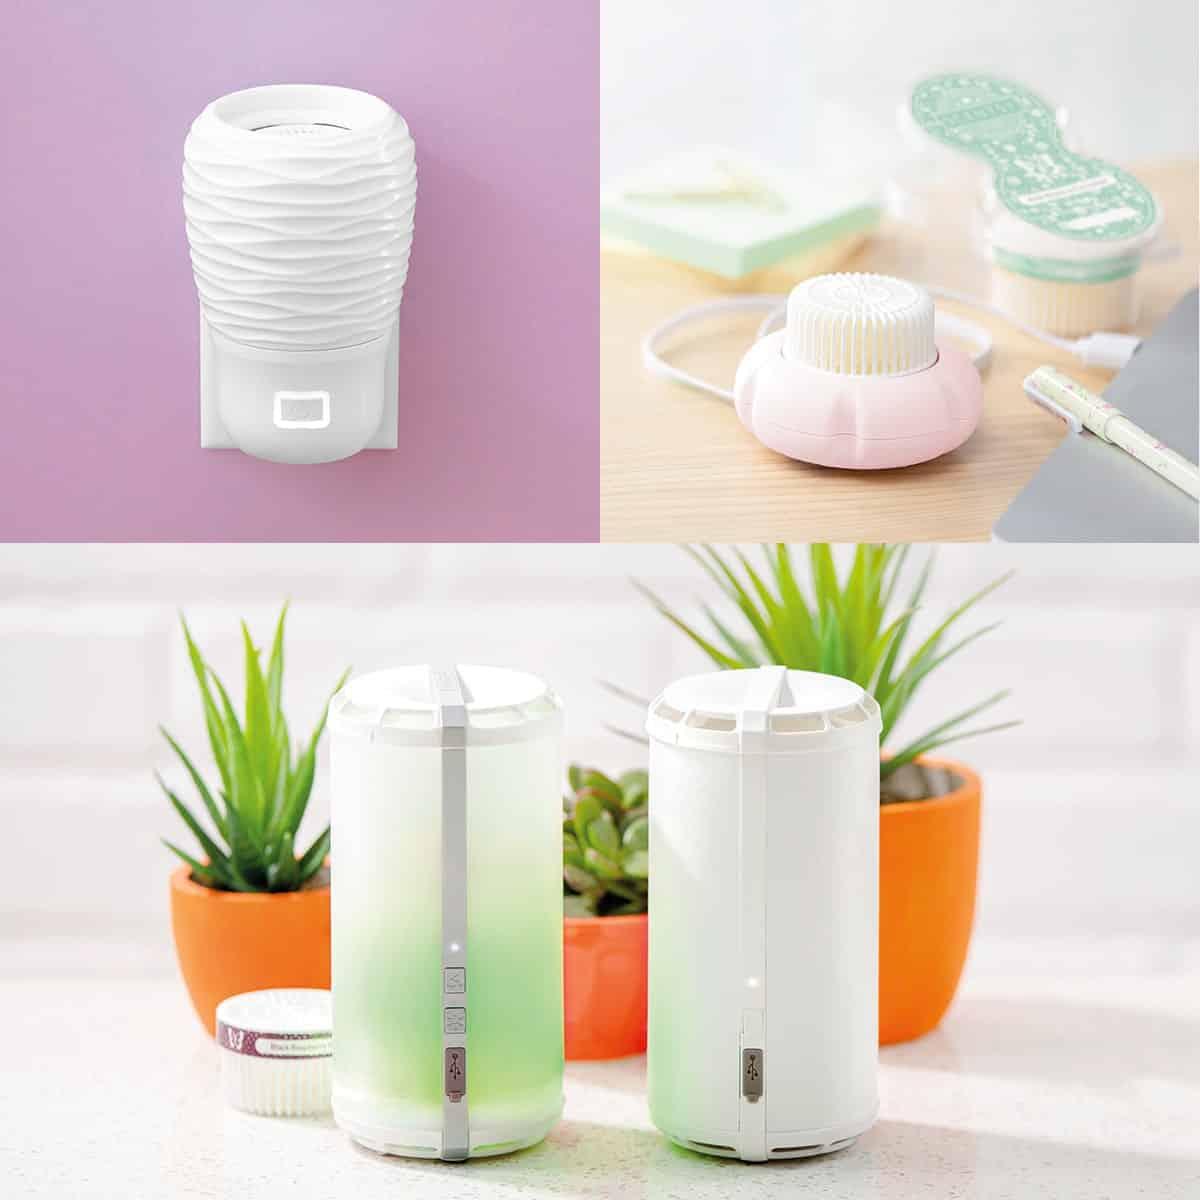 SCENTSY GO AND PODS